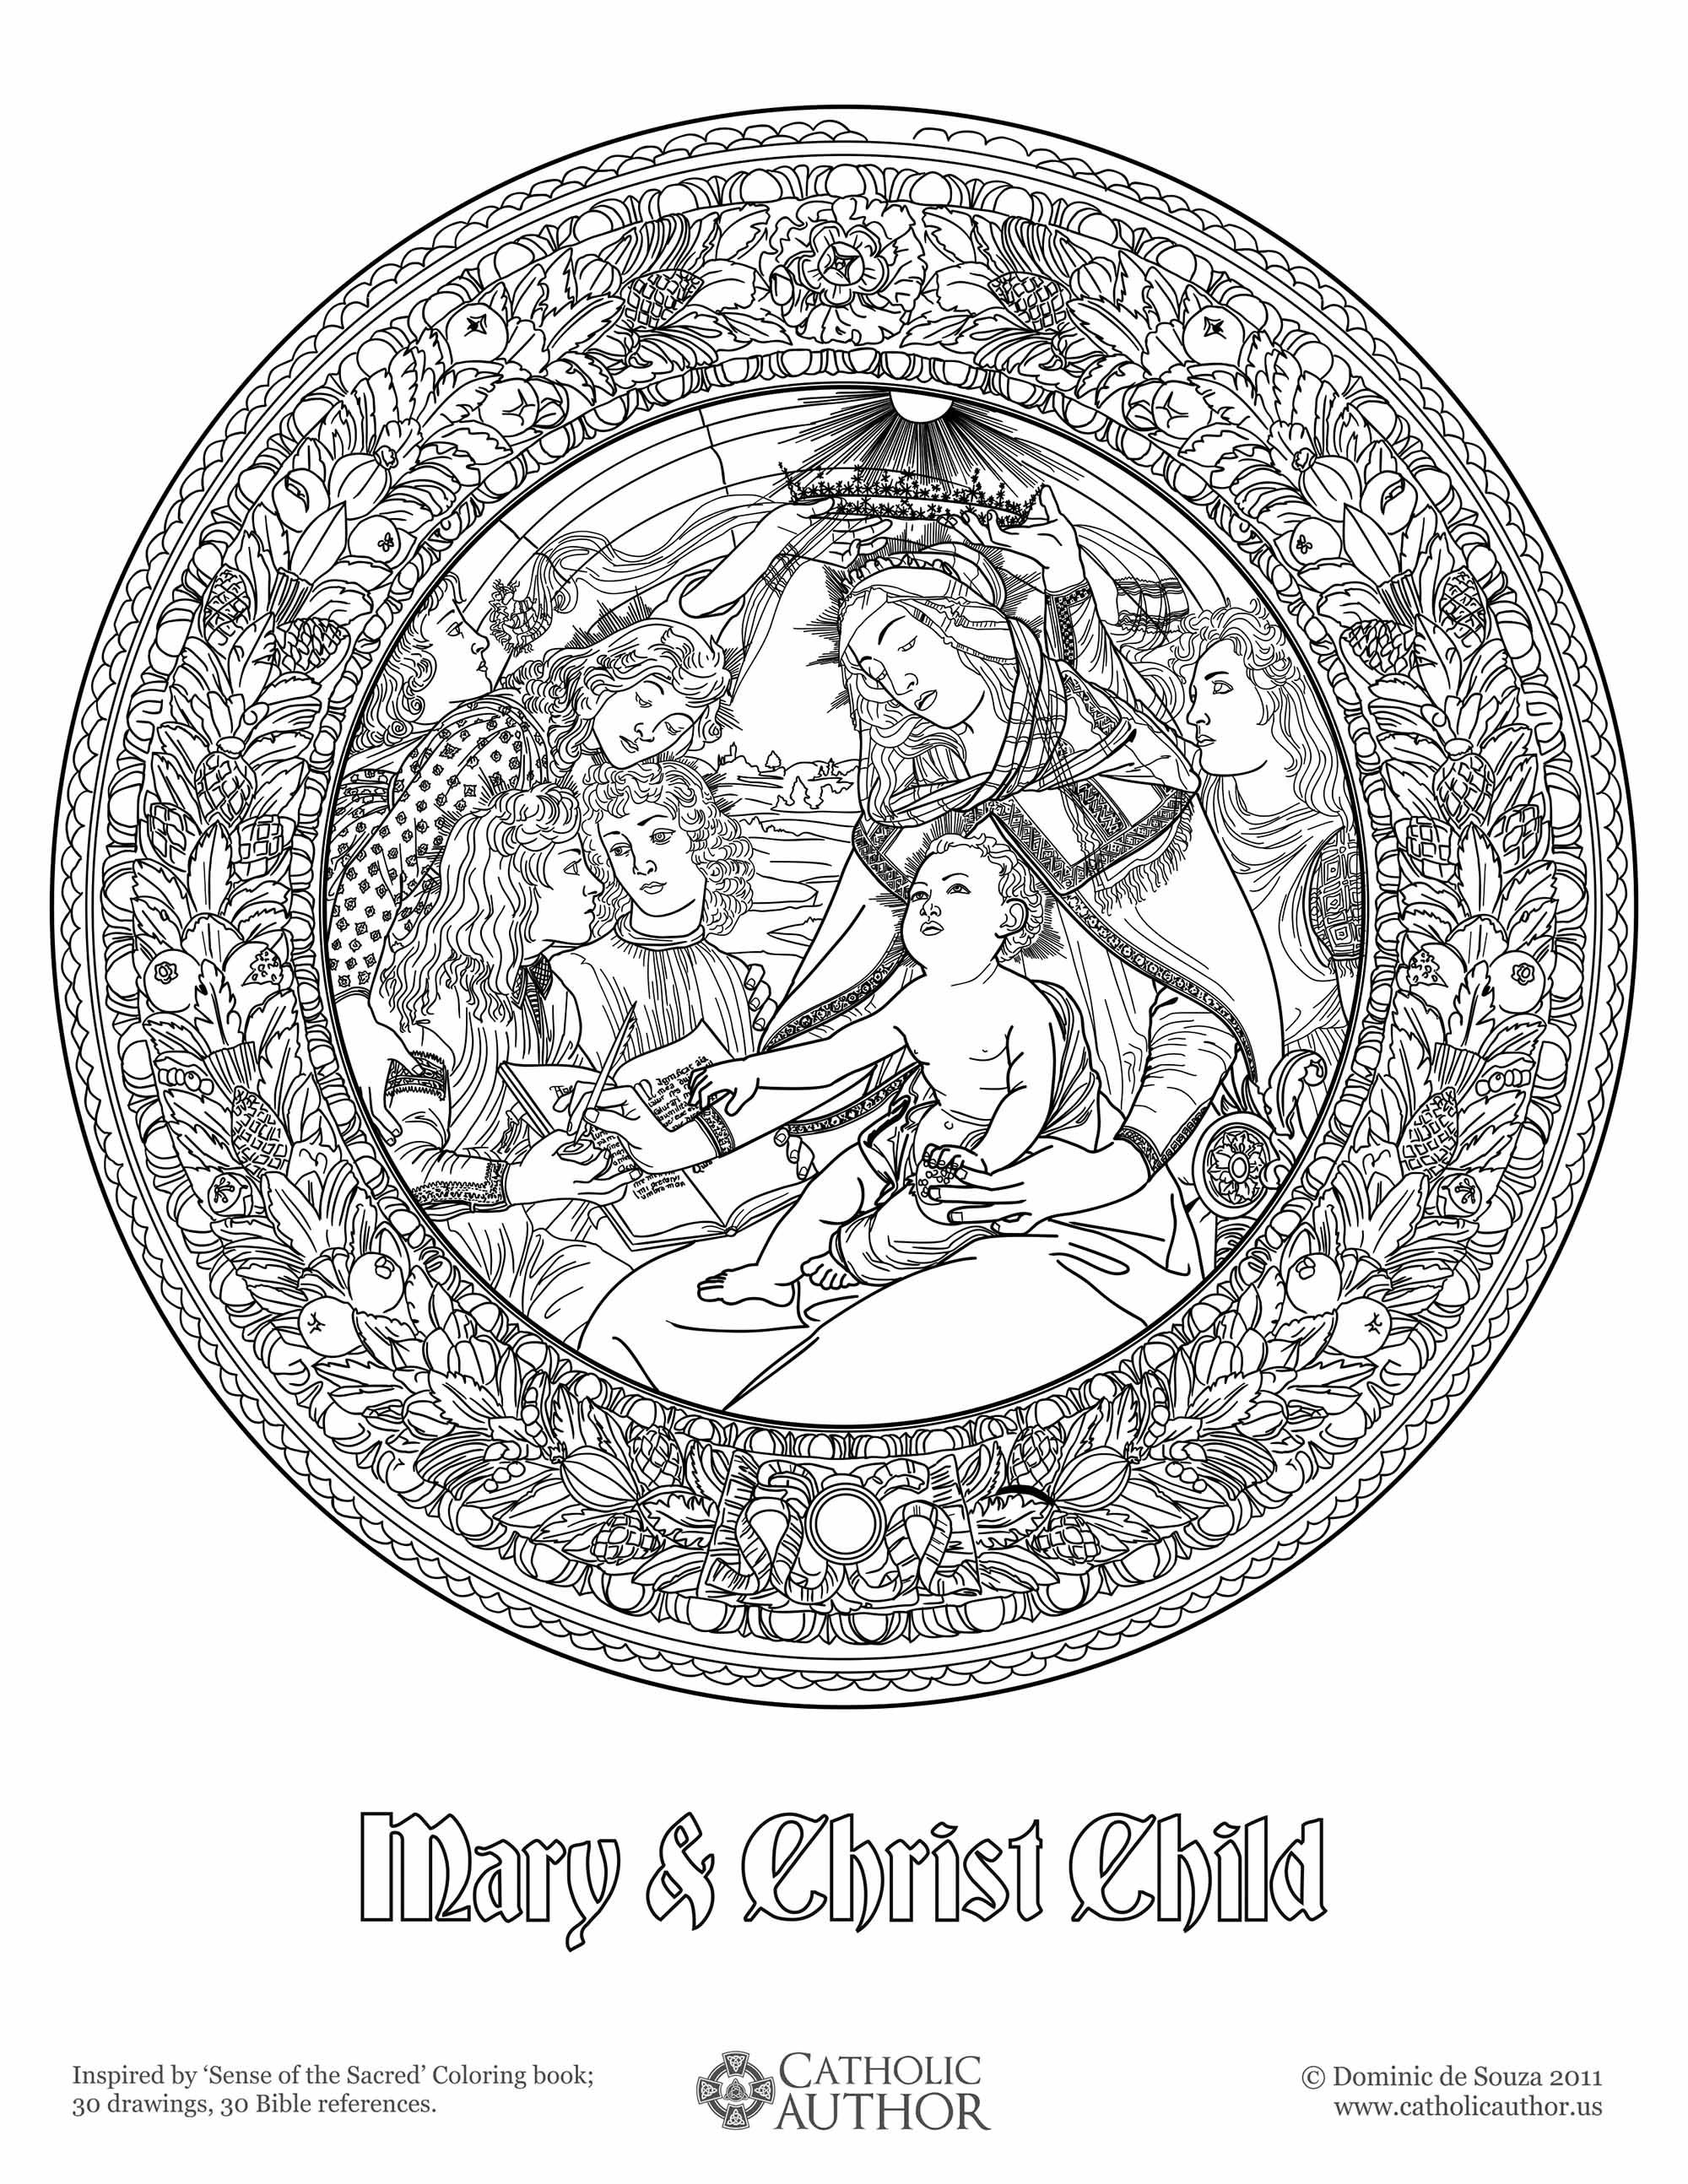 mary u0026 christ child free hand drawn catholic coloring pictures